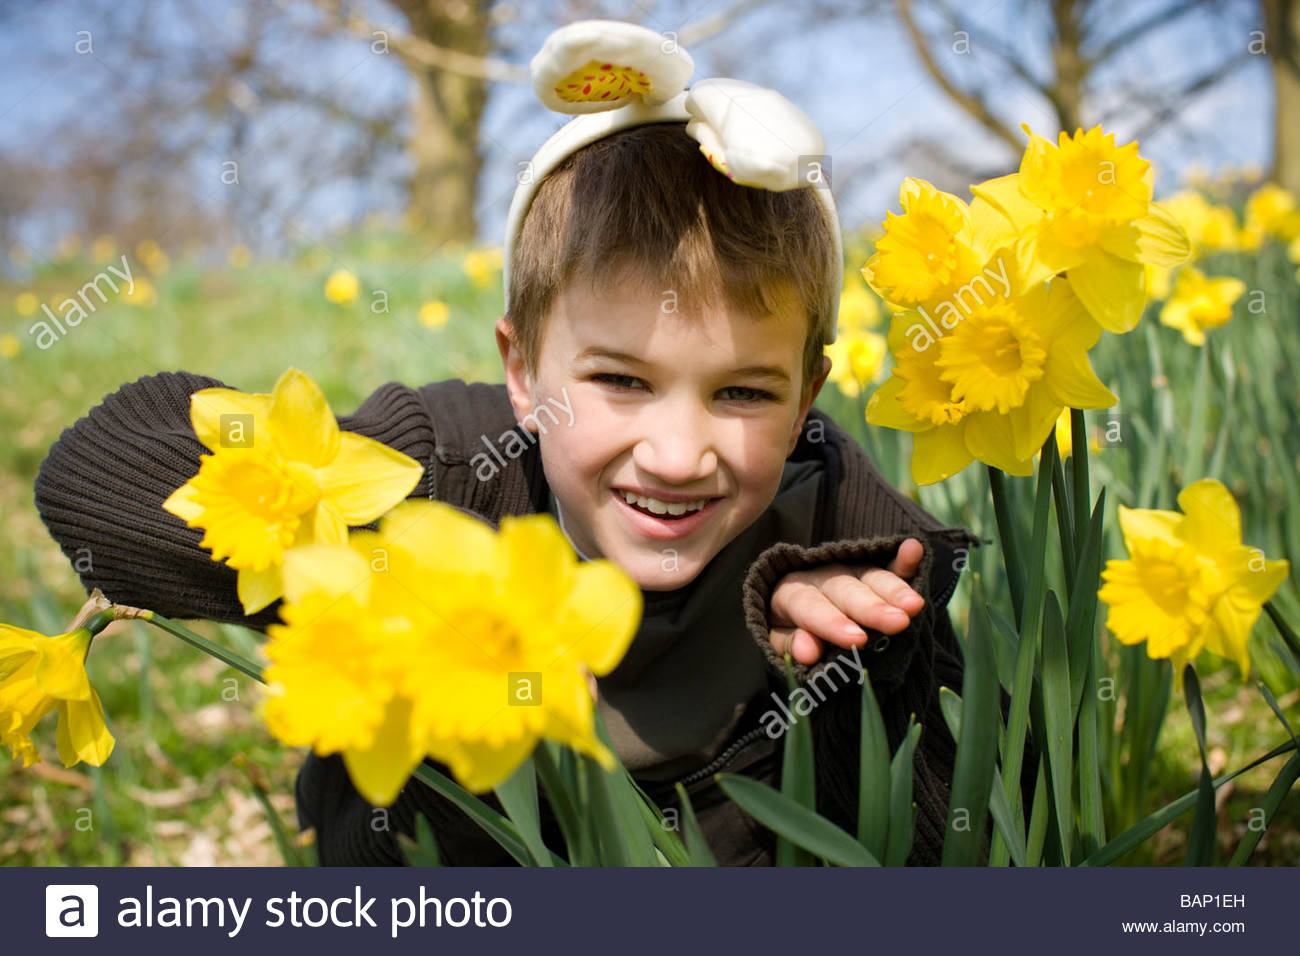 A young boy peering through daffodils wearing bunny ears - Stock Image